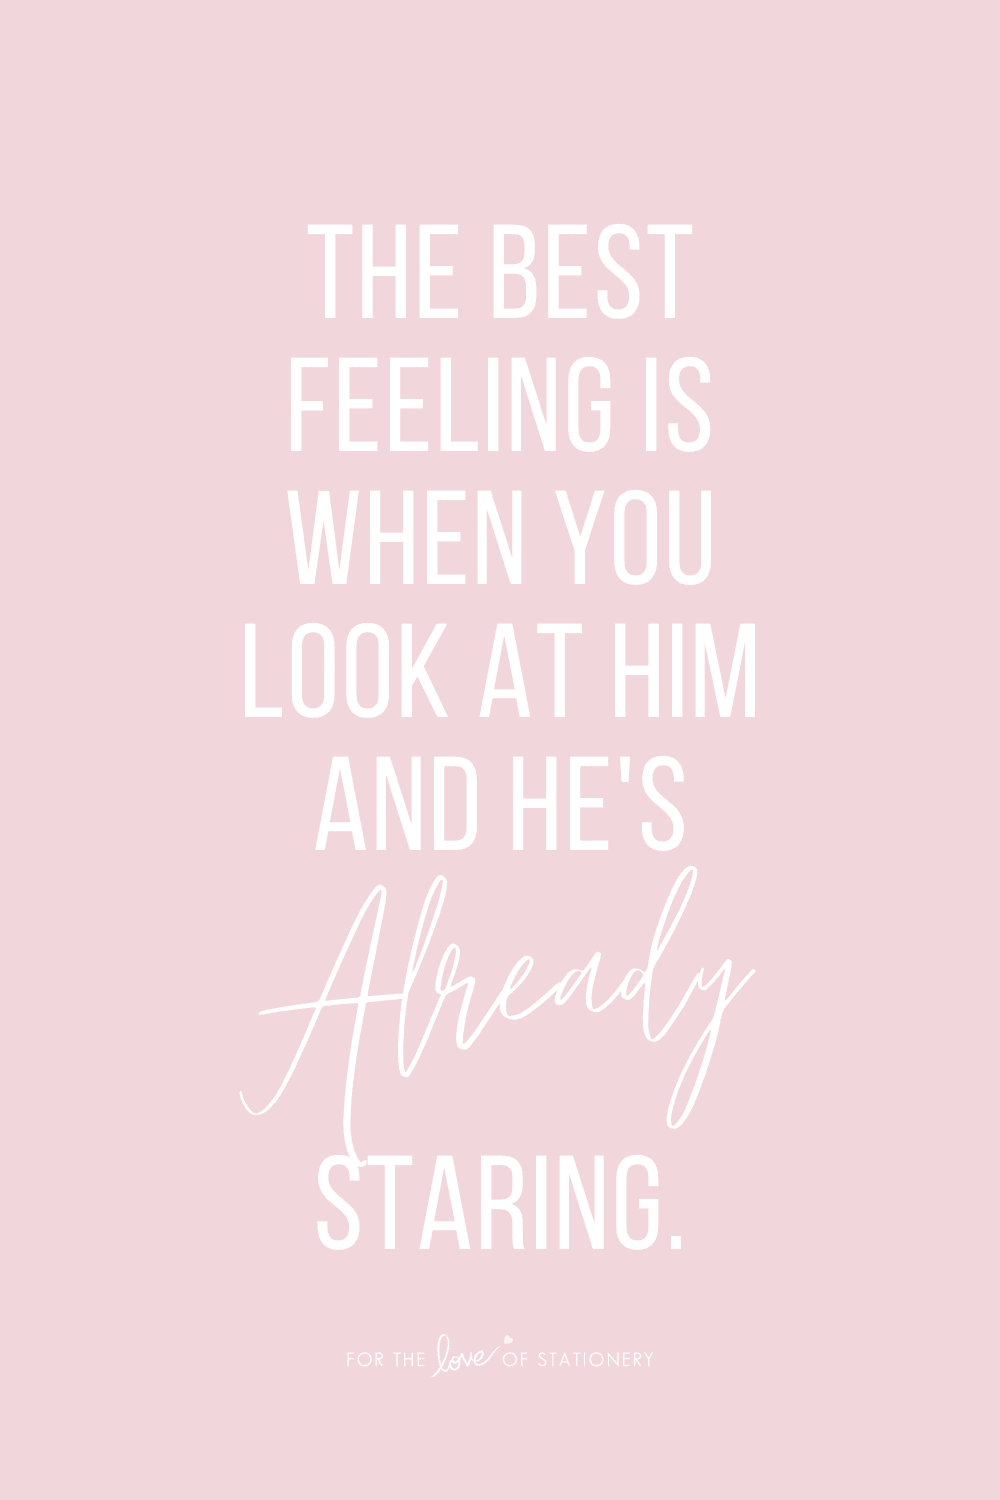 Cute Love Quotes for Him The Best Feeling is When You Look at Him and He's Already Staring